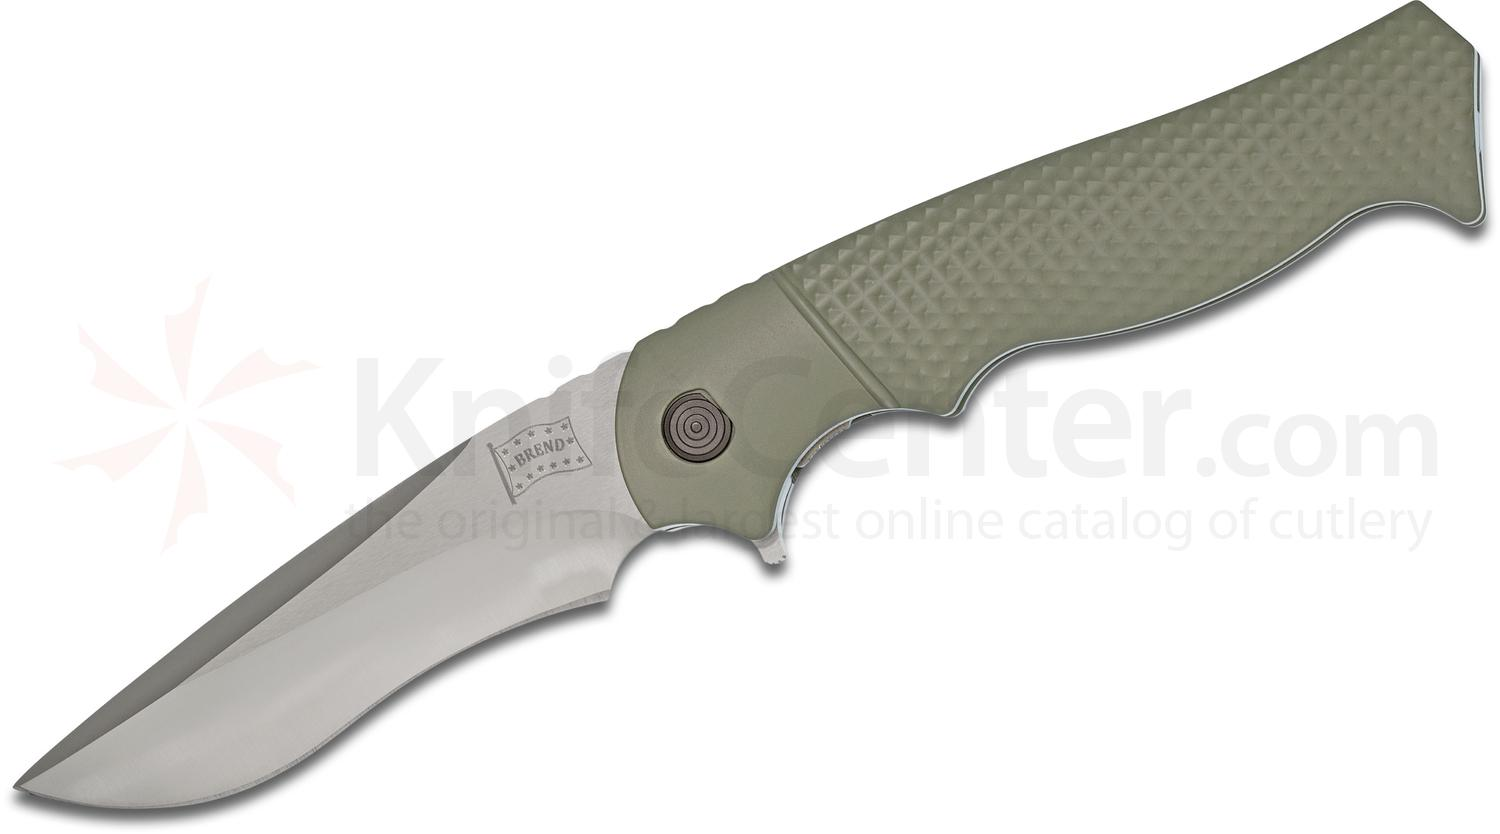 Walter Brend Handmade Knives Model 2 Assisted Flipper 3.75 inch PSF27 Hand Ground Recurve Blade, Green Aluminum Handles